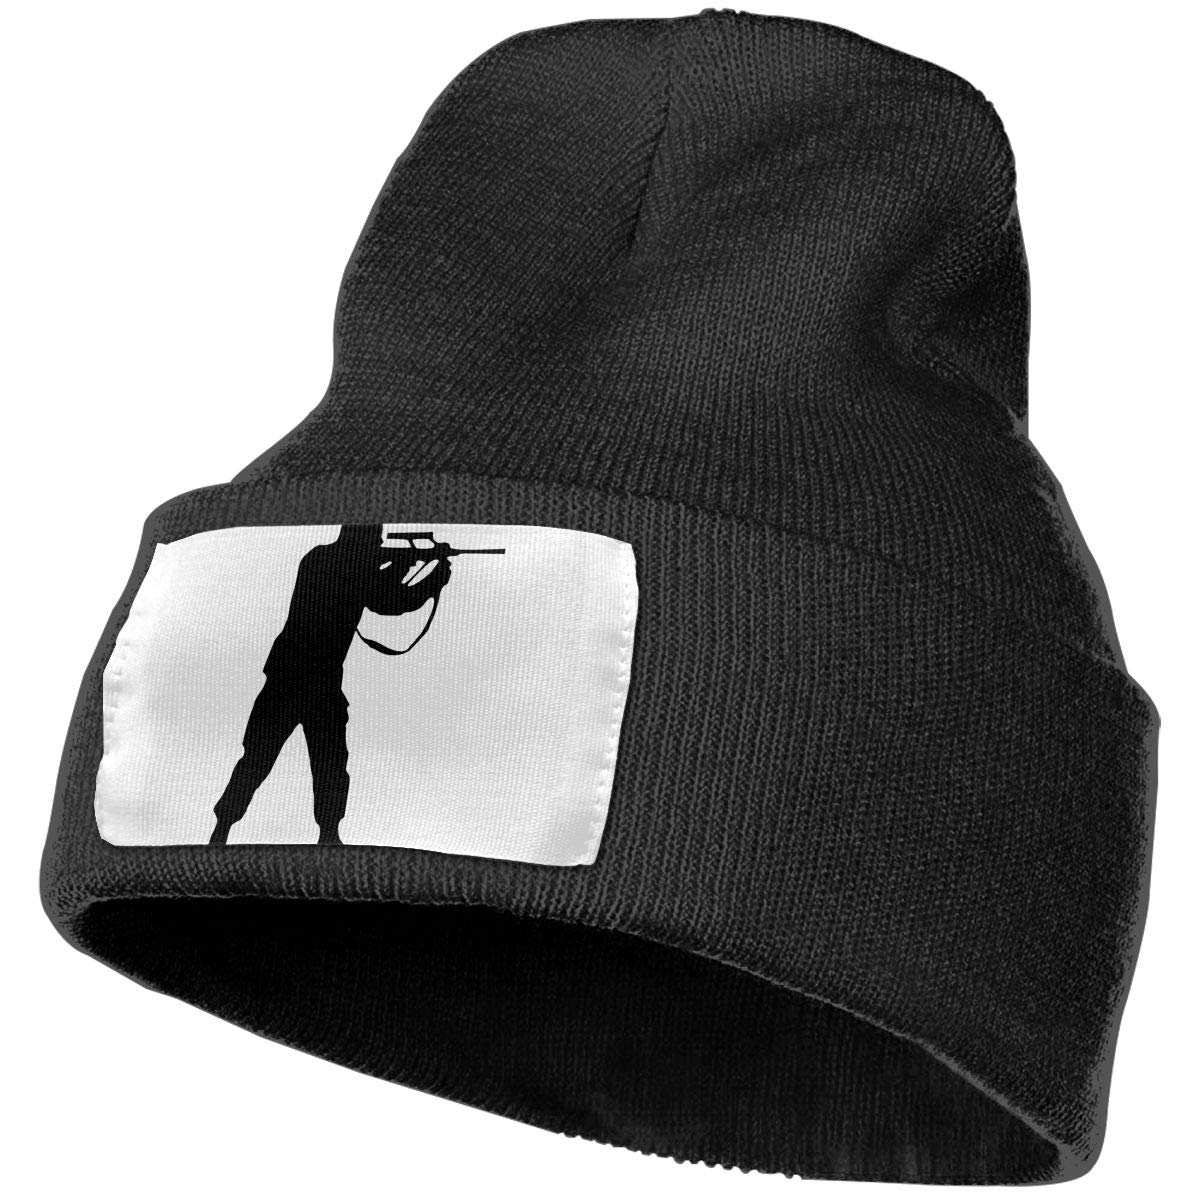 American Soldiers Day Unisex Fashion Knitted Hat Luxury Hip-Hop Cap